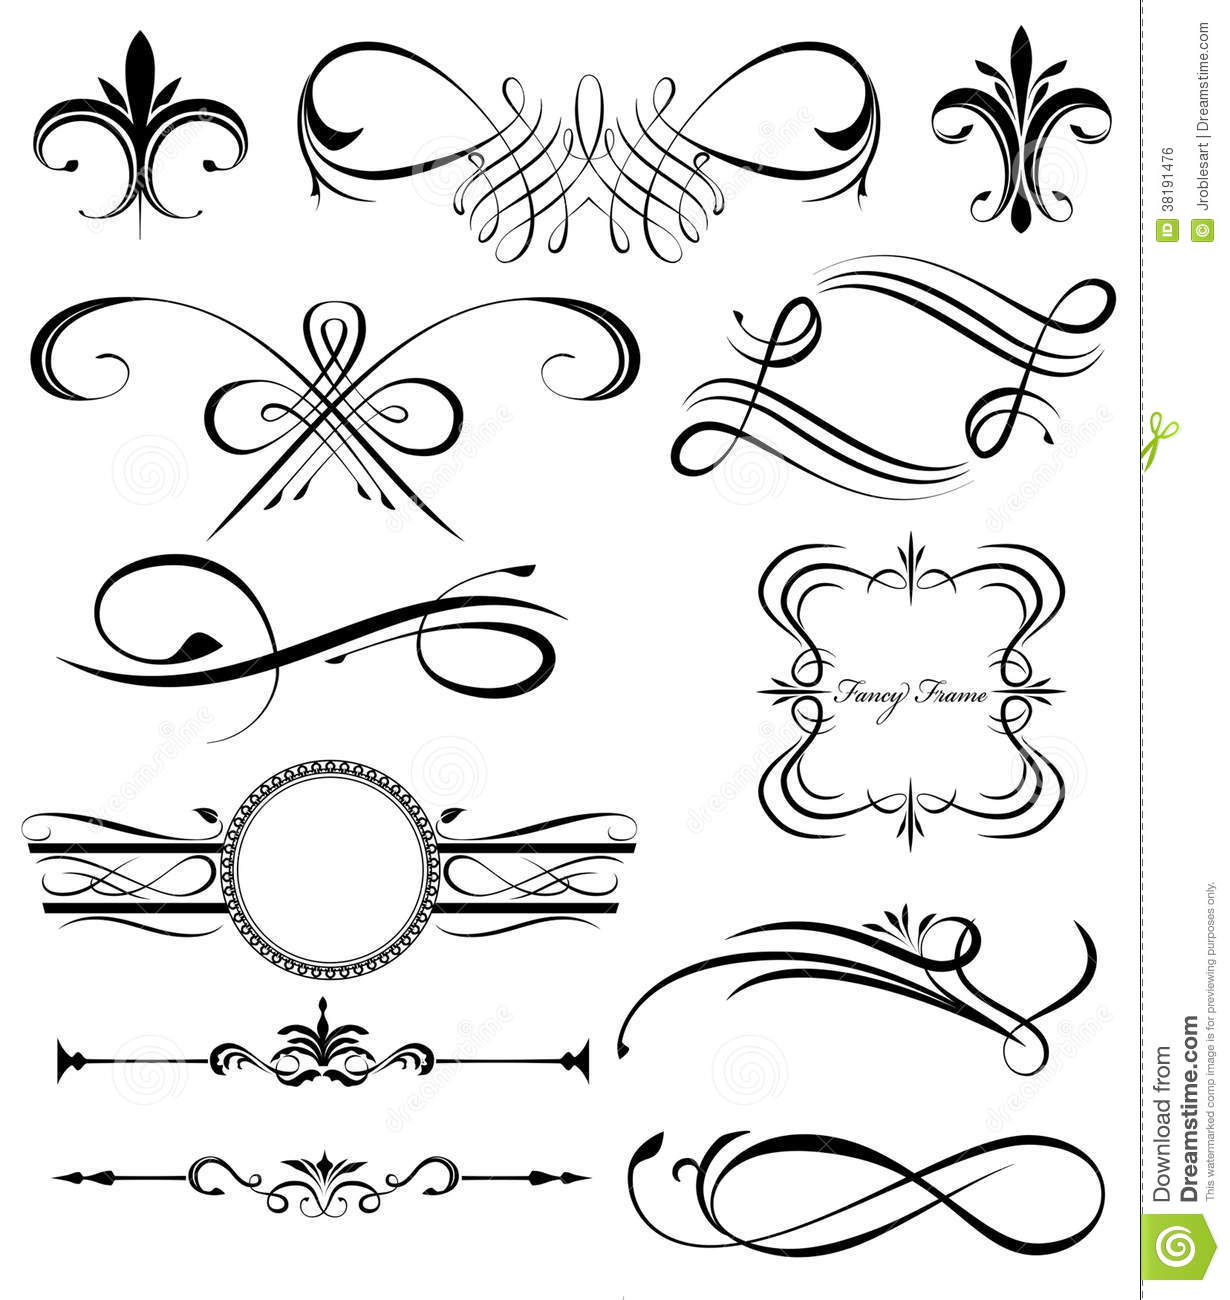 Drawing Vector Lines In Photo : Fancy lines royalty free stock image